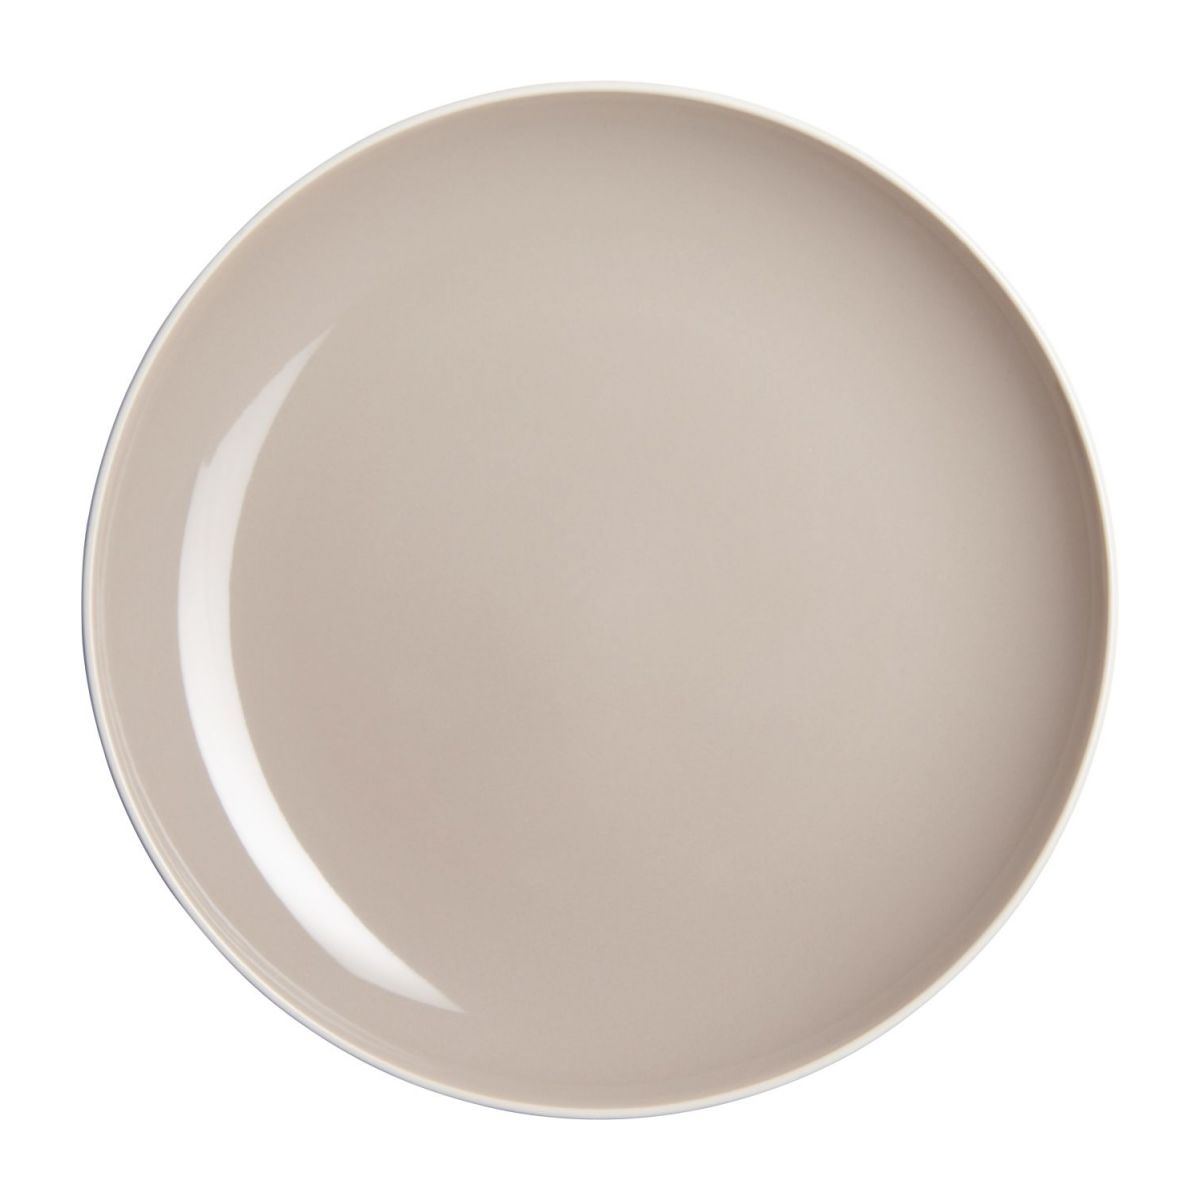 Dessert plate made of sandstone, grey n°1